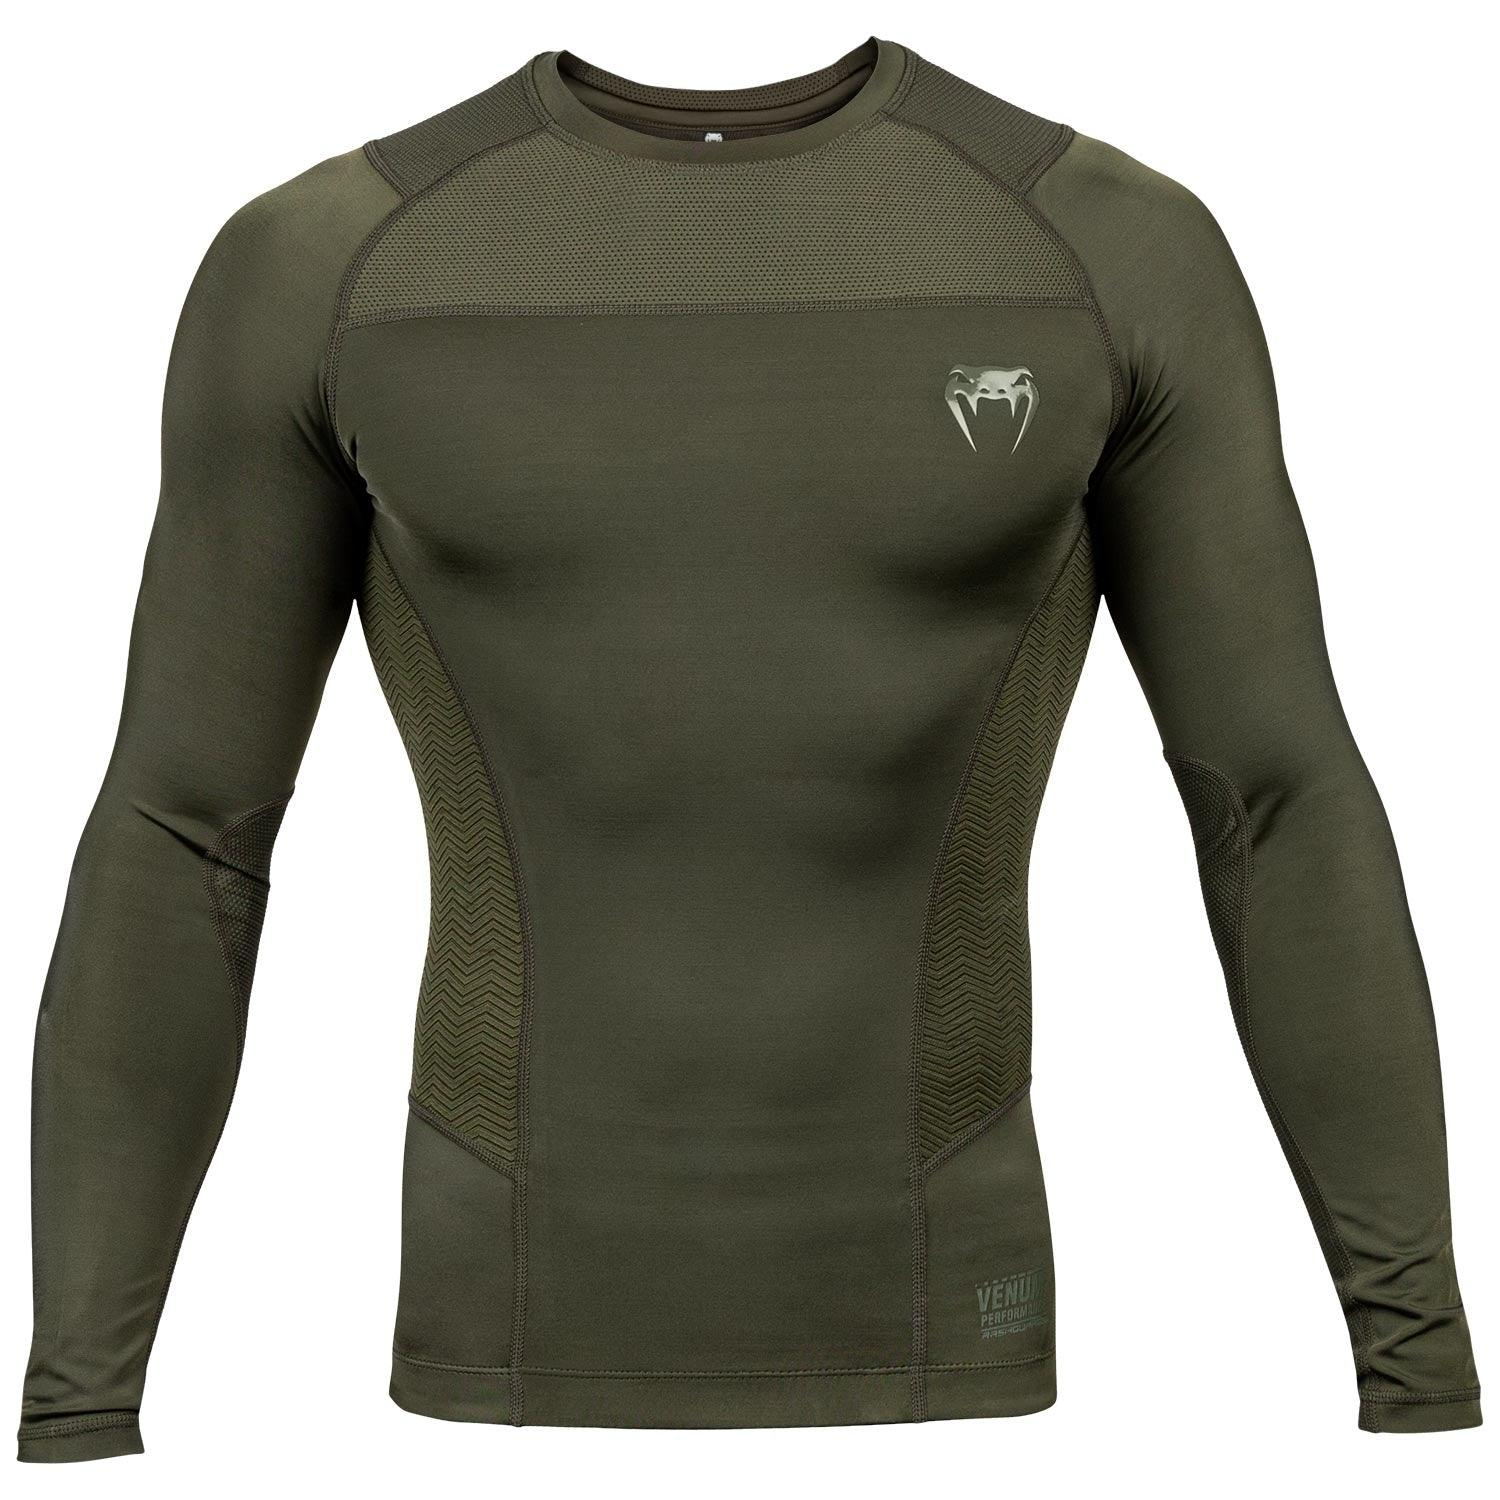 Venum G-Fit Rashguard - Long Sleeves – Khaki picture 1